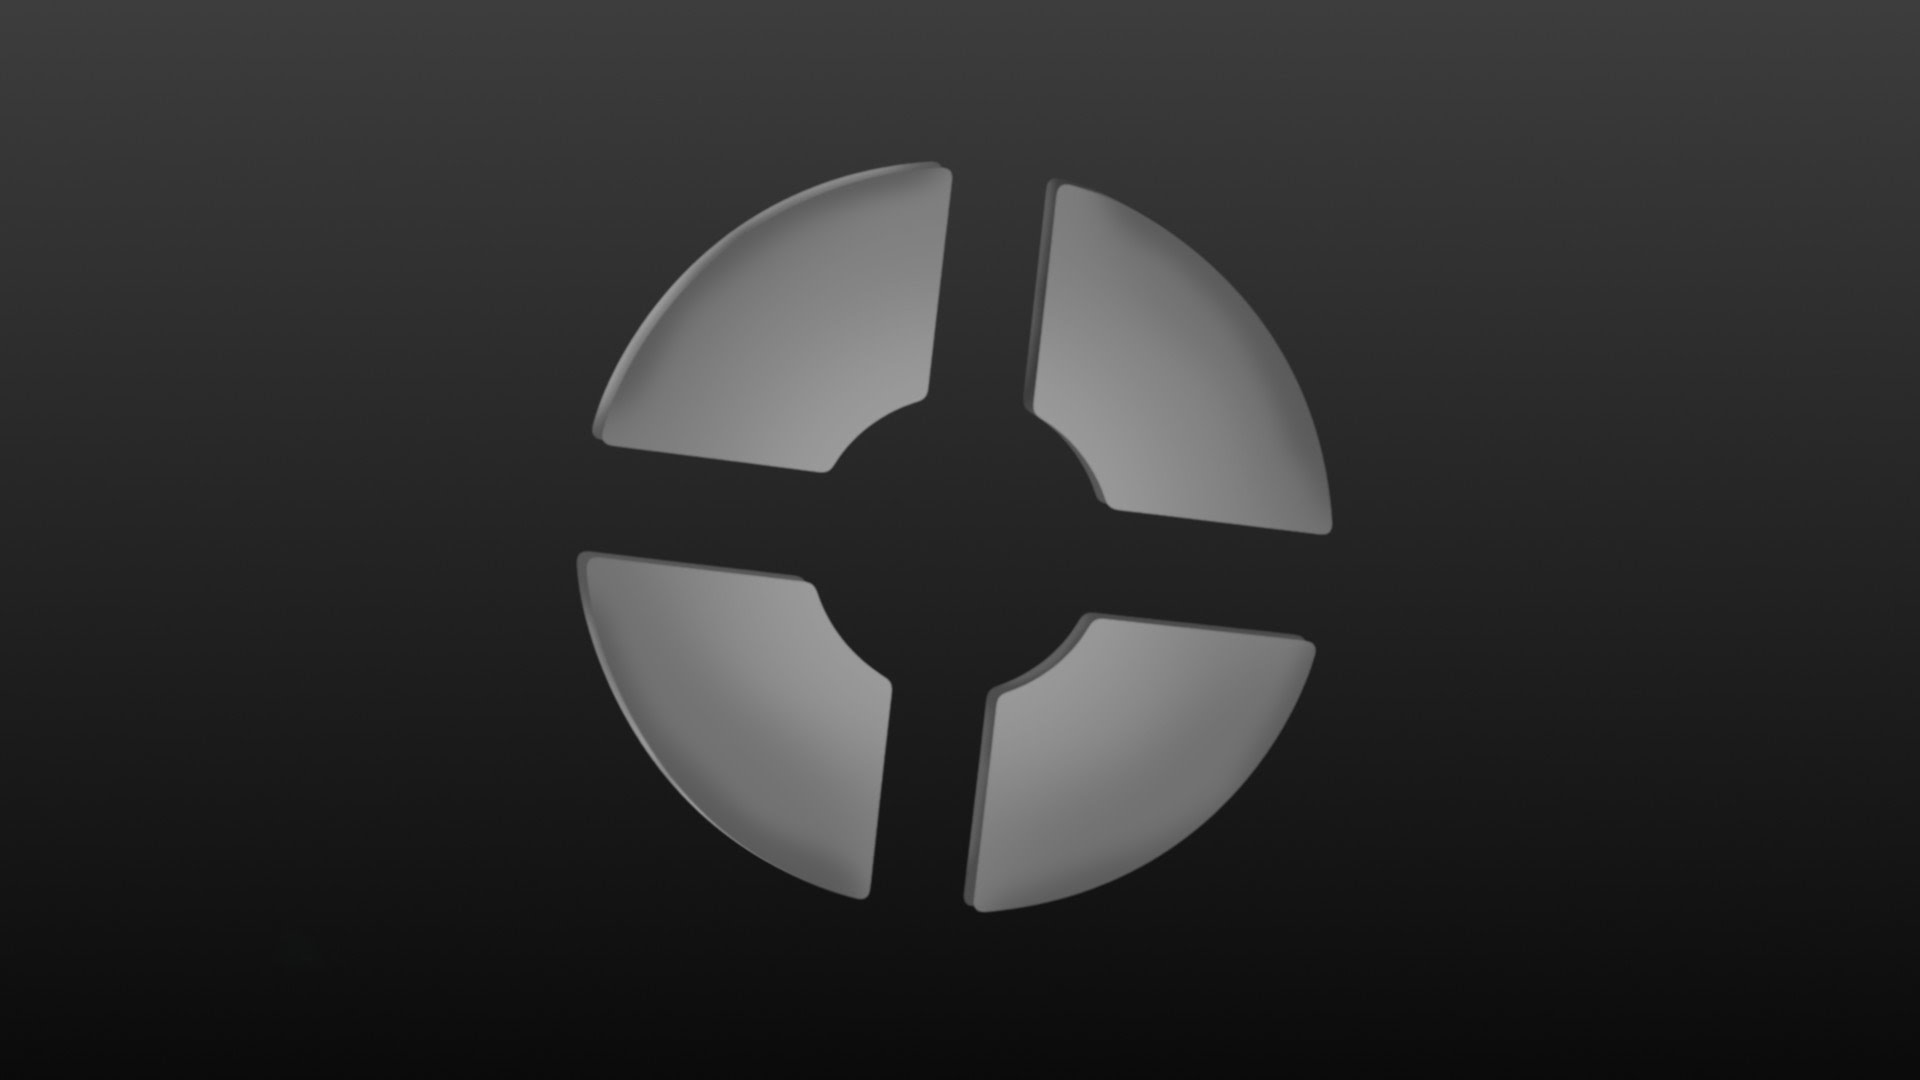 Stunning Team Fortress 2 Logo Picture